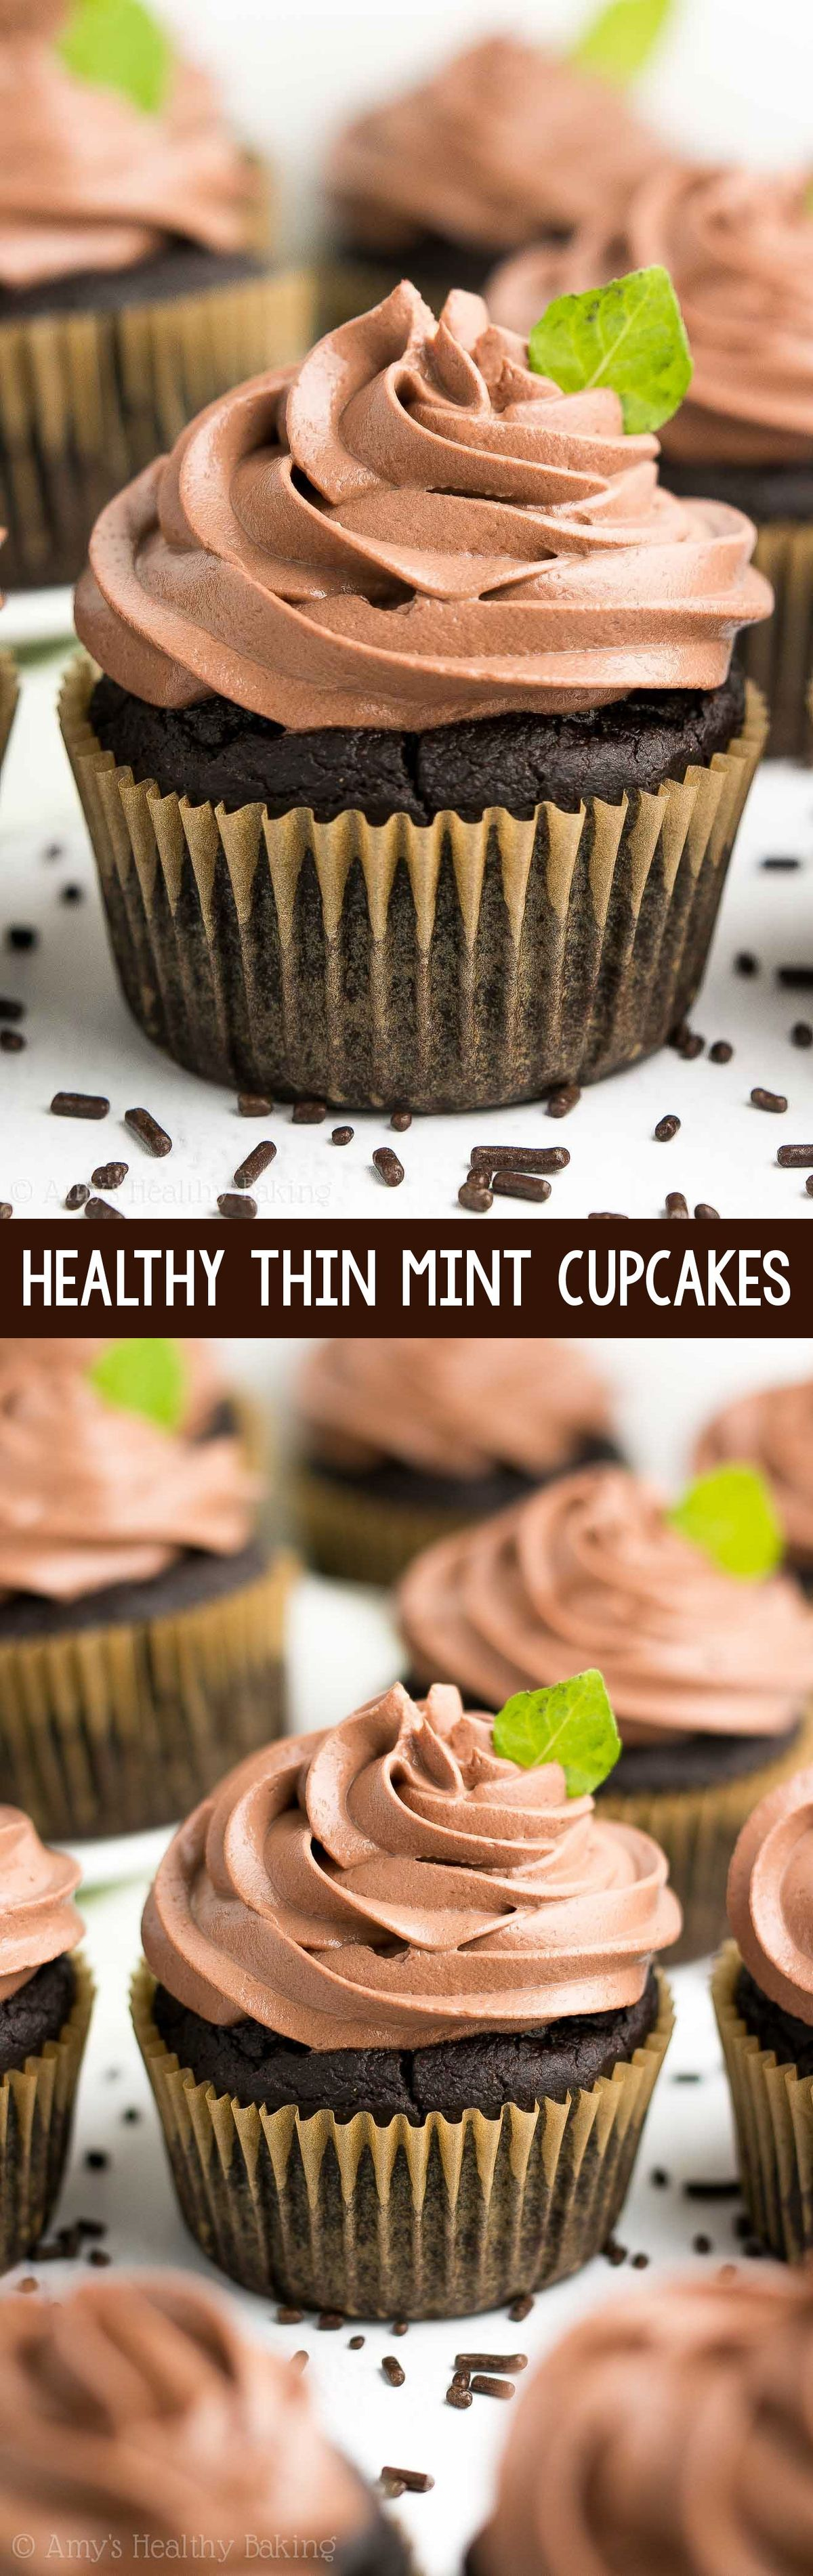 Healthy Thin Mint Cupcakes